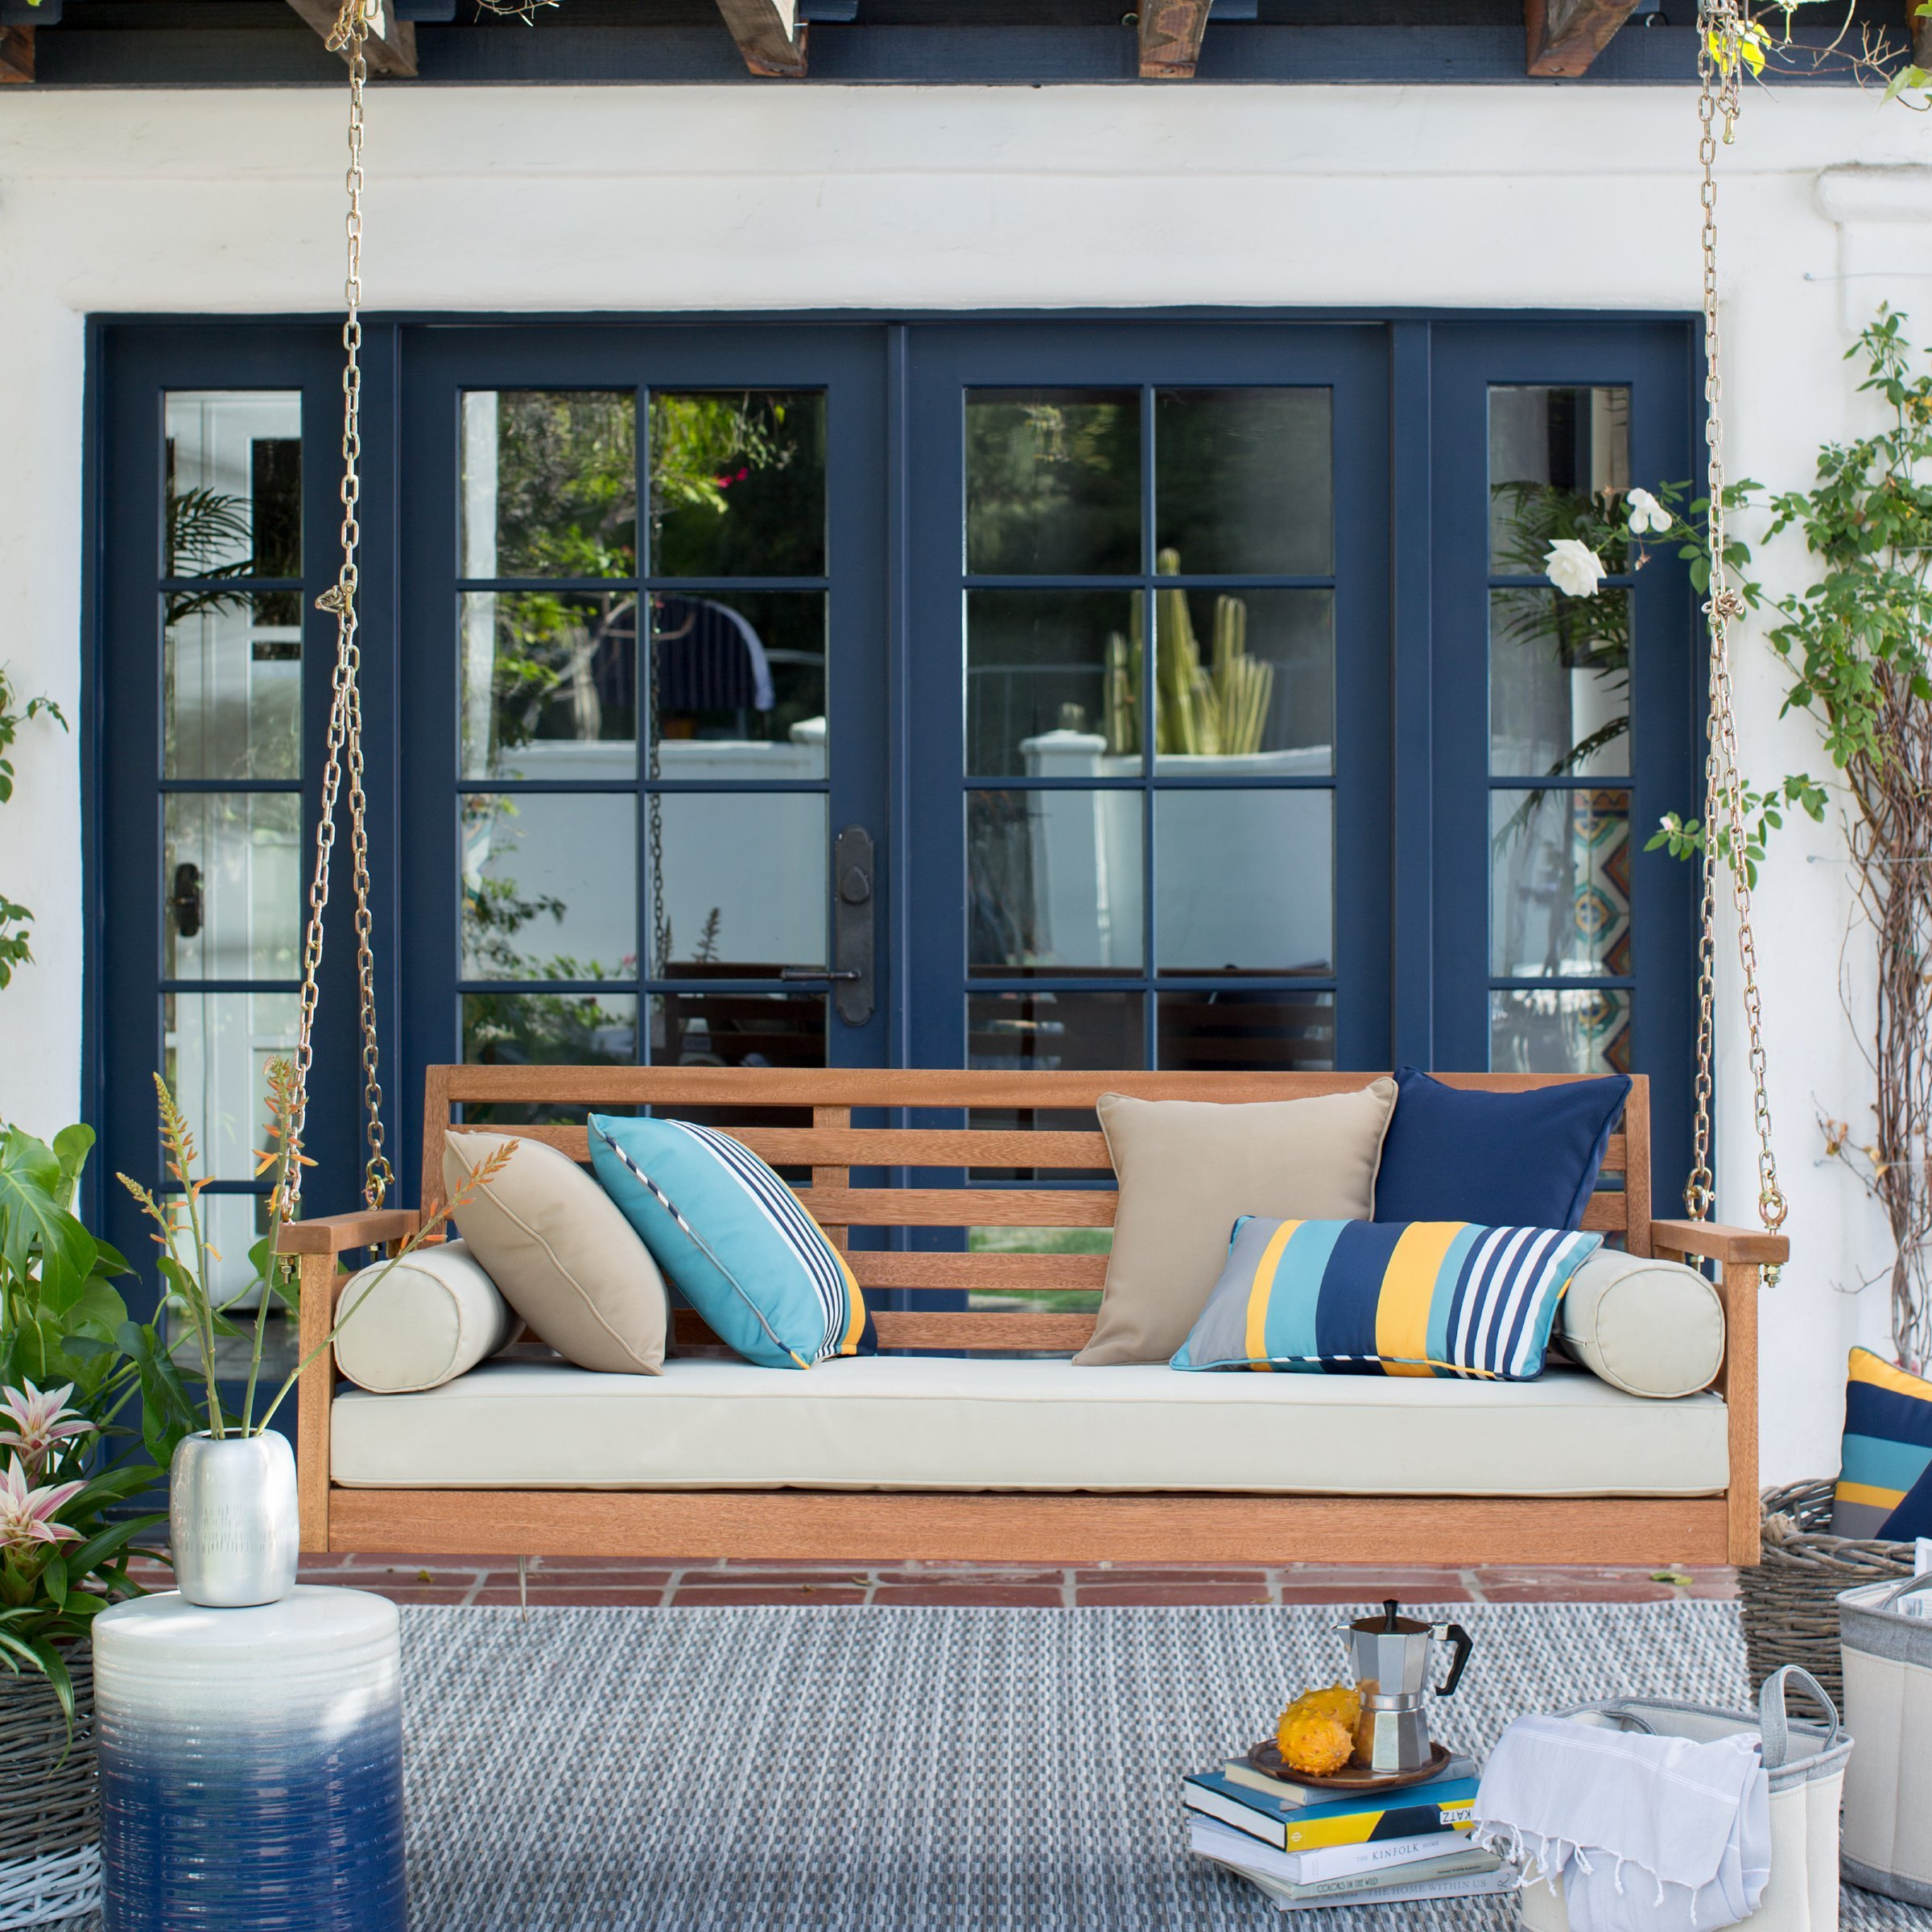 Patio Furniture & Accessories Mainstays Belden Park Outdoor Regarding Porch Swings (View 23 of 25)